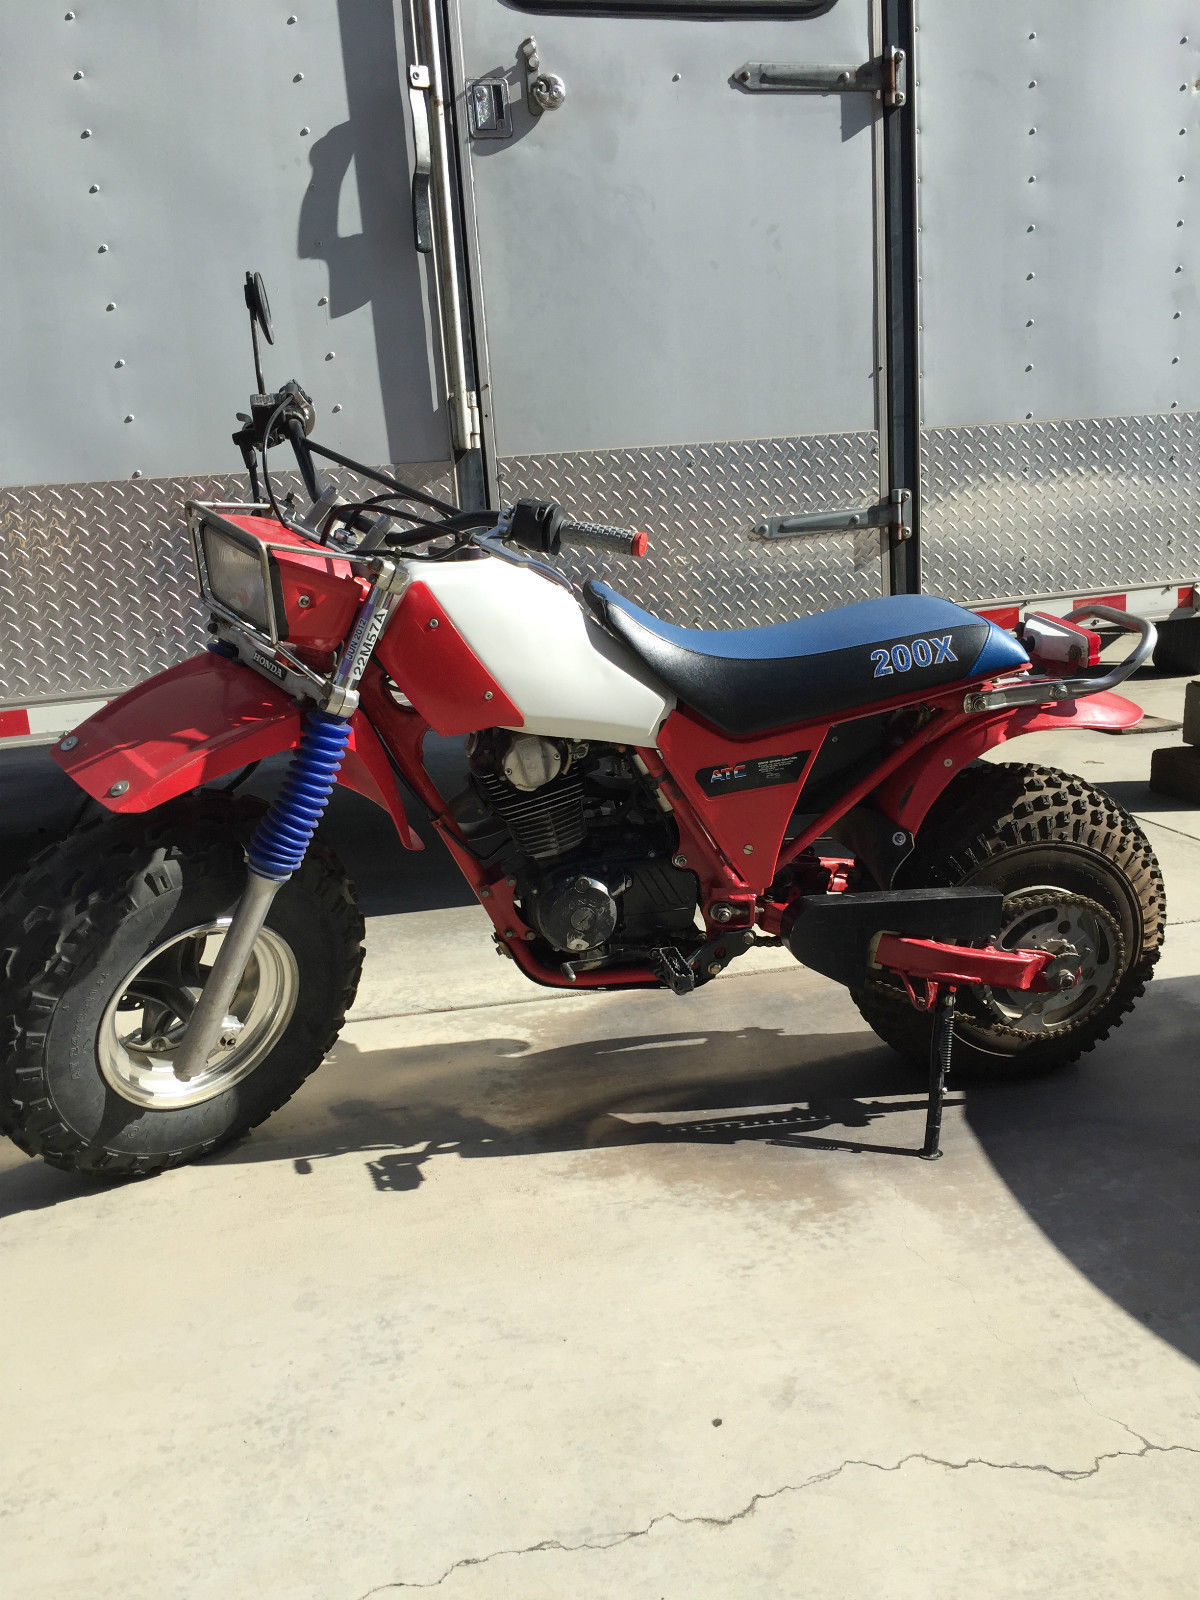 200x Atc Motorcycles For Sale